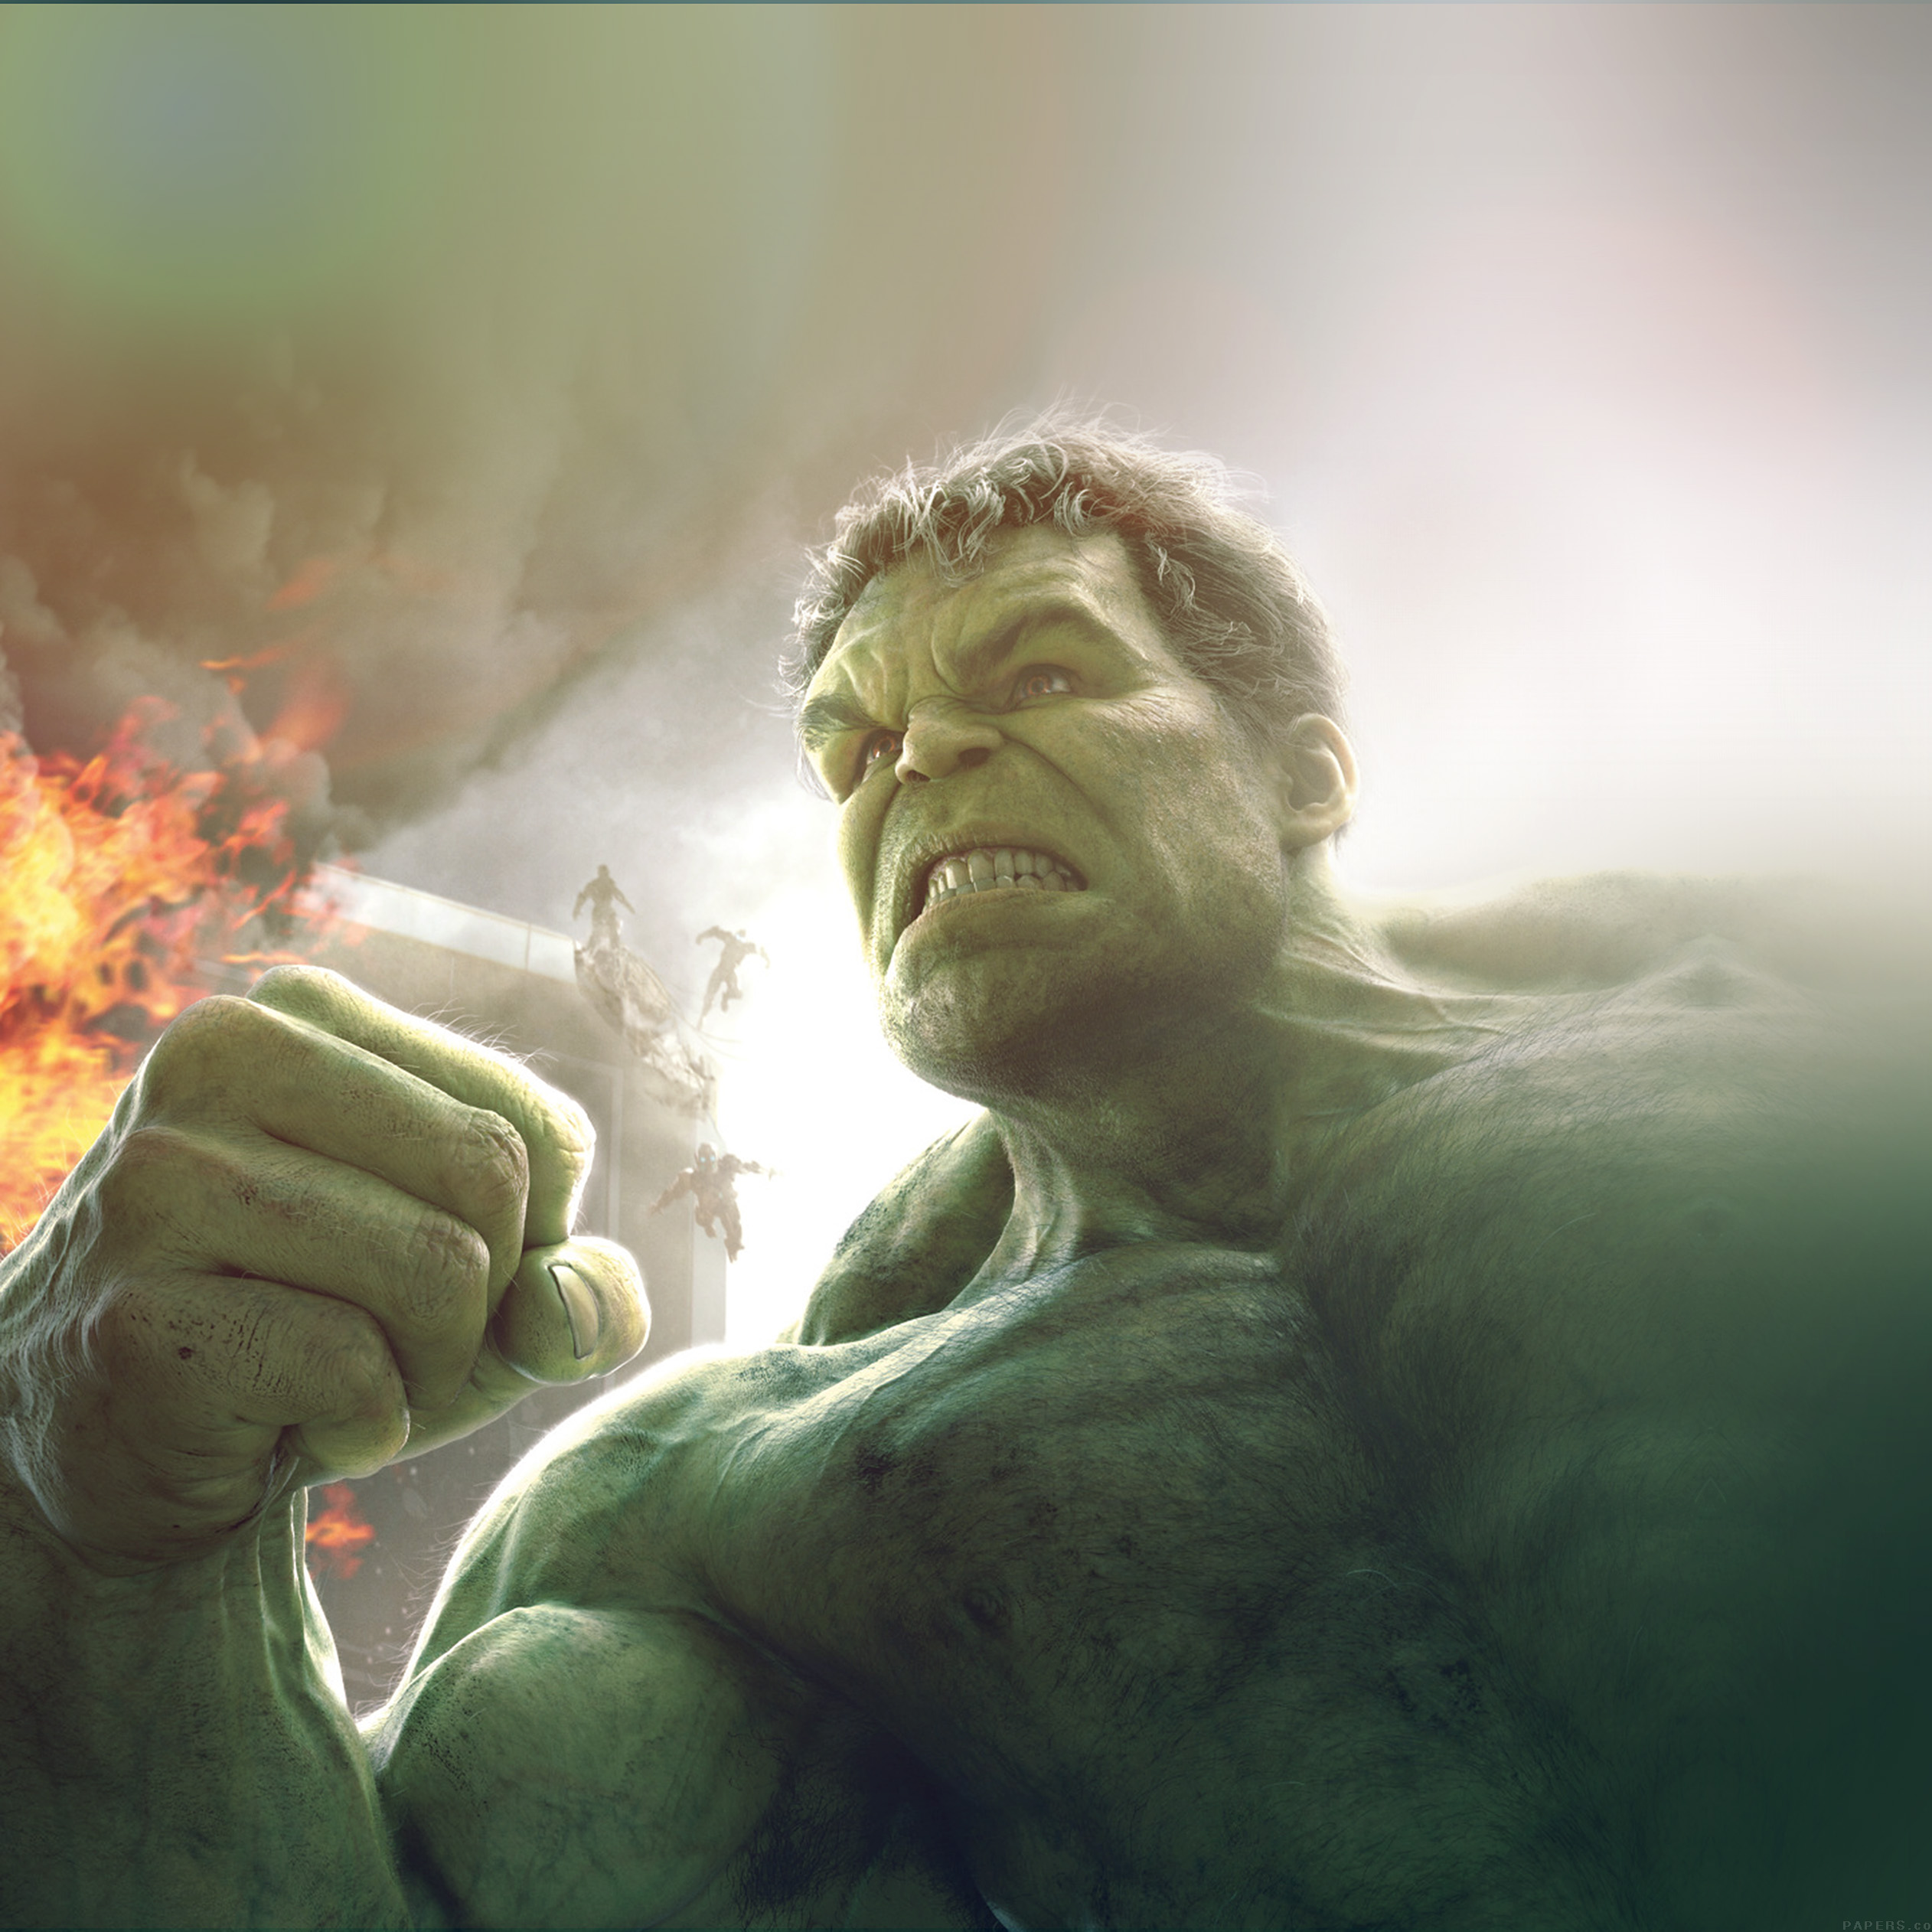 avengers-age-of-ultron-hulk-hero-art-9-wallpaper